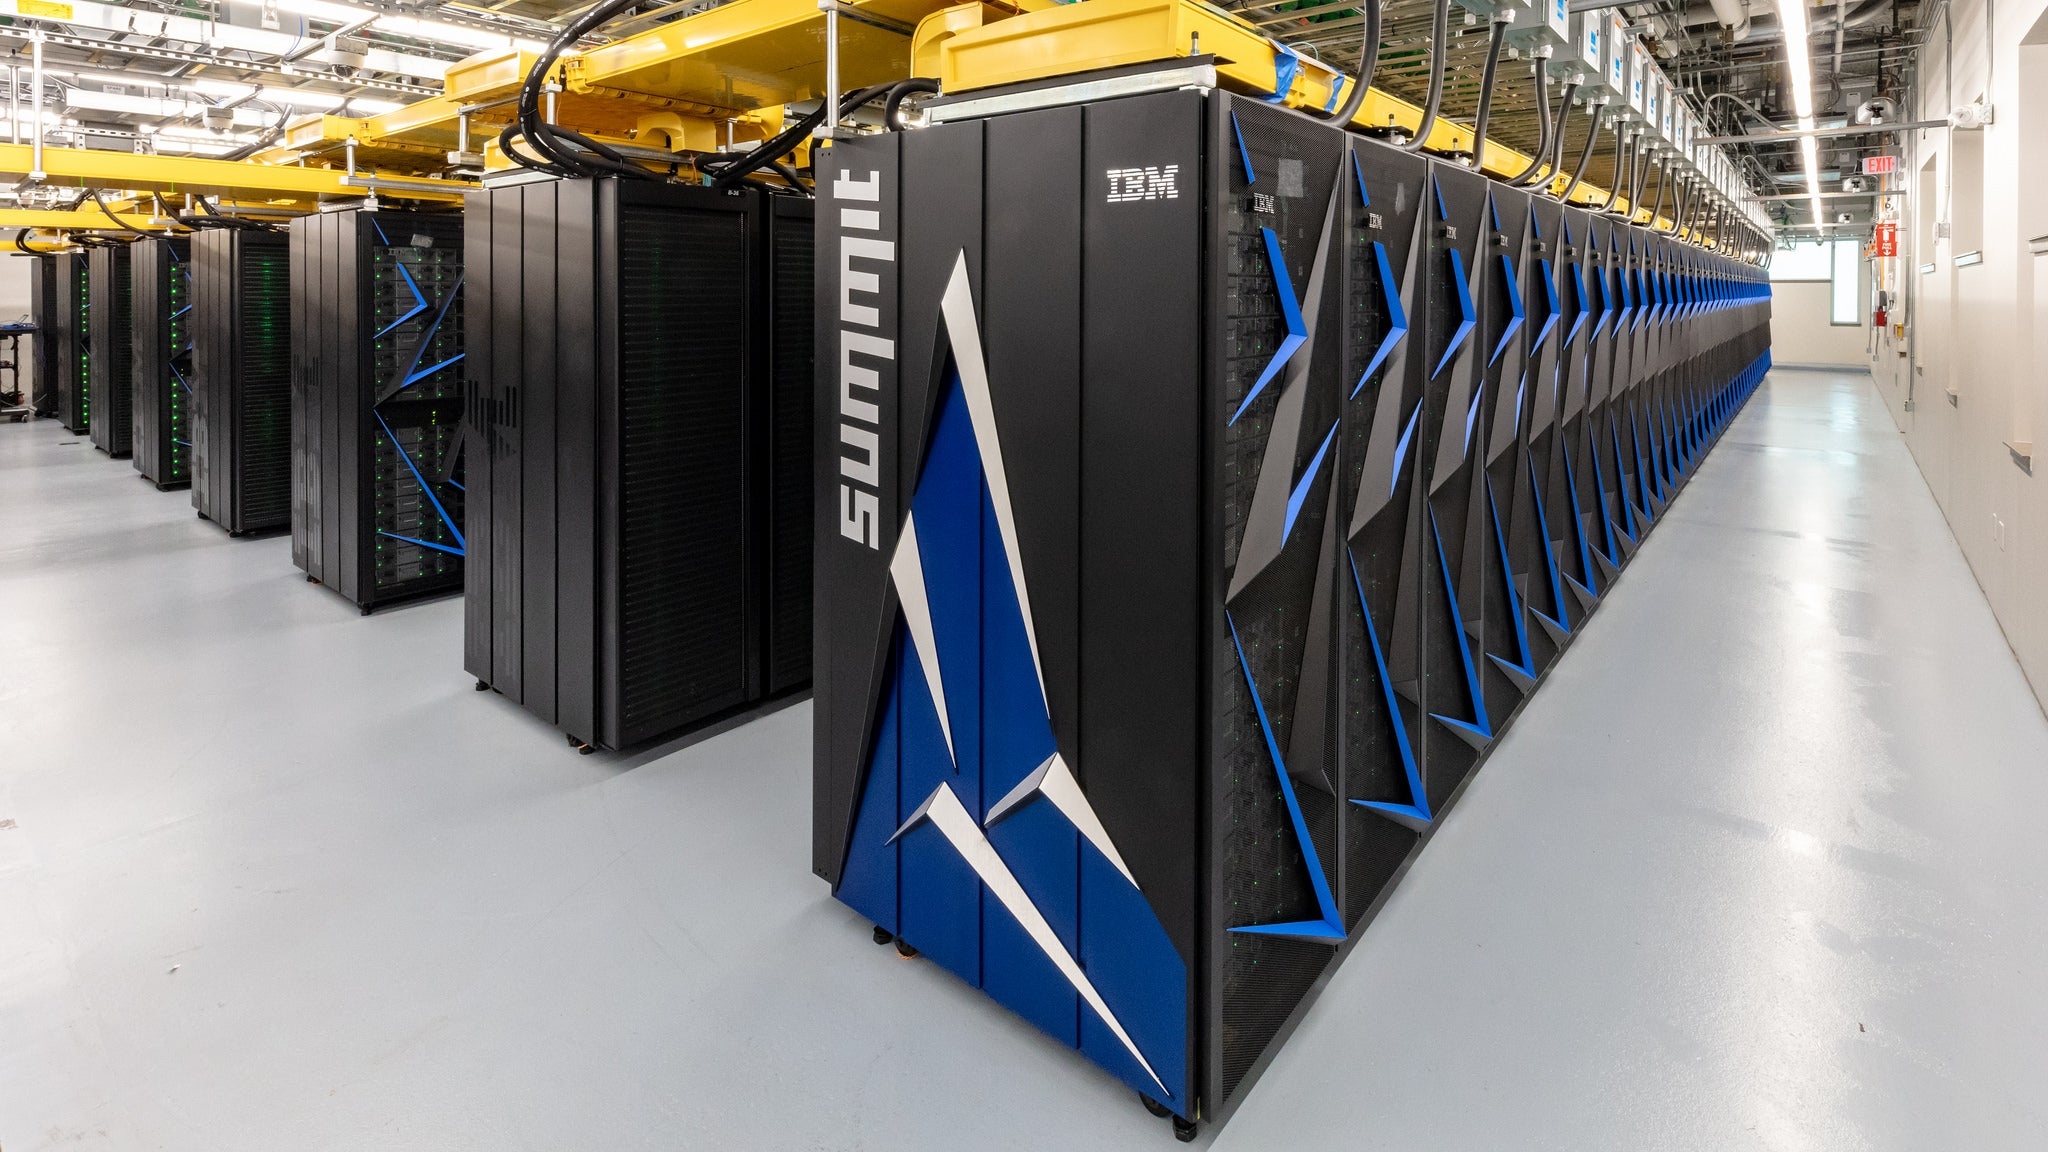 Meet the new fastest supercomputer in the world